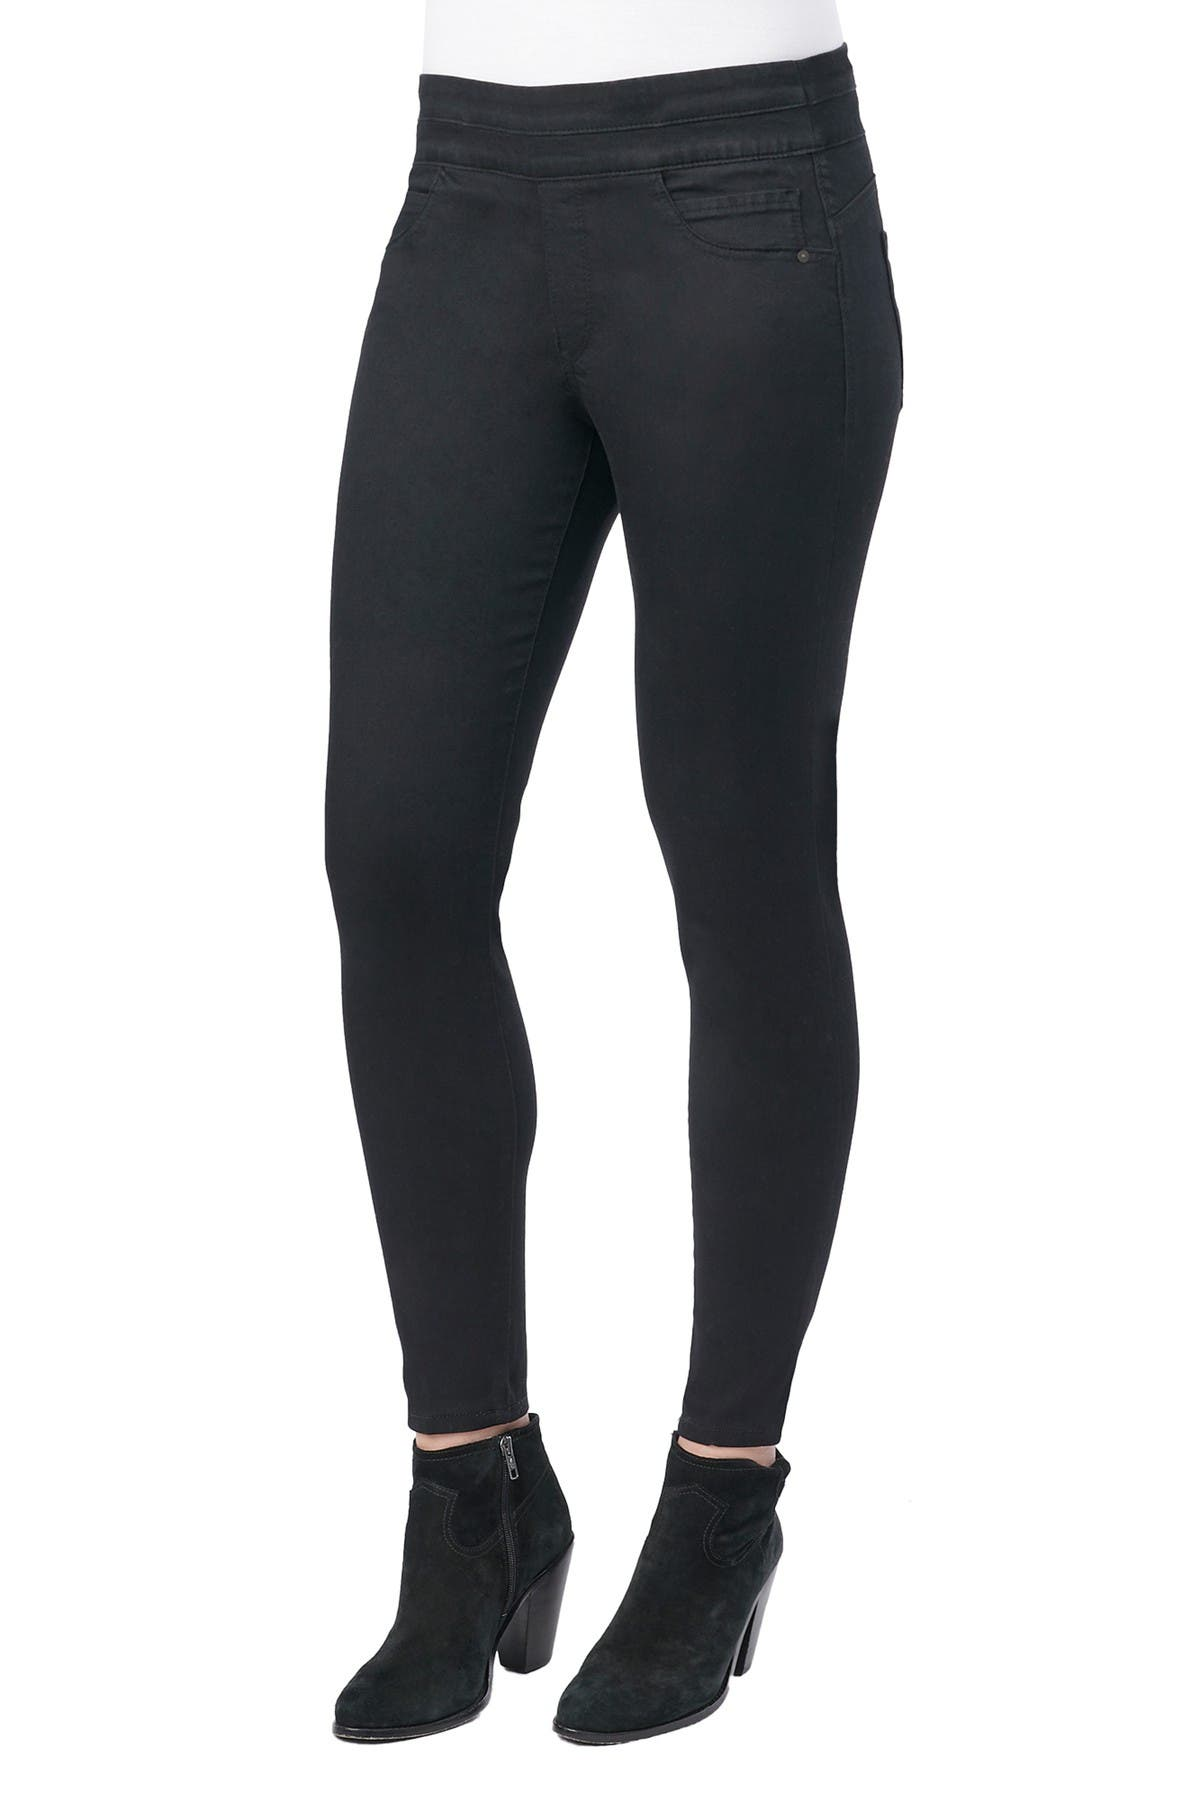 Democracy AB TECHNOLOGY GLIDER ANKLE LEGGINGS